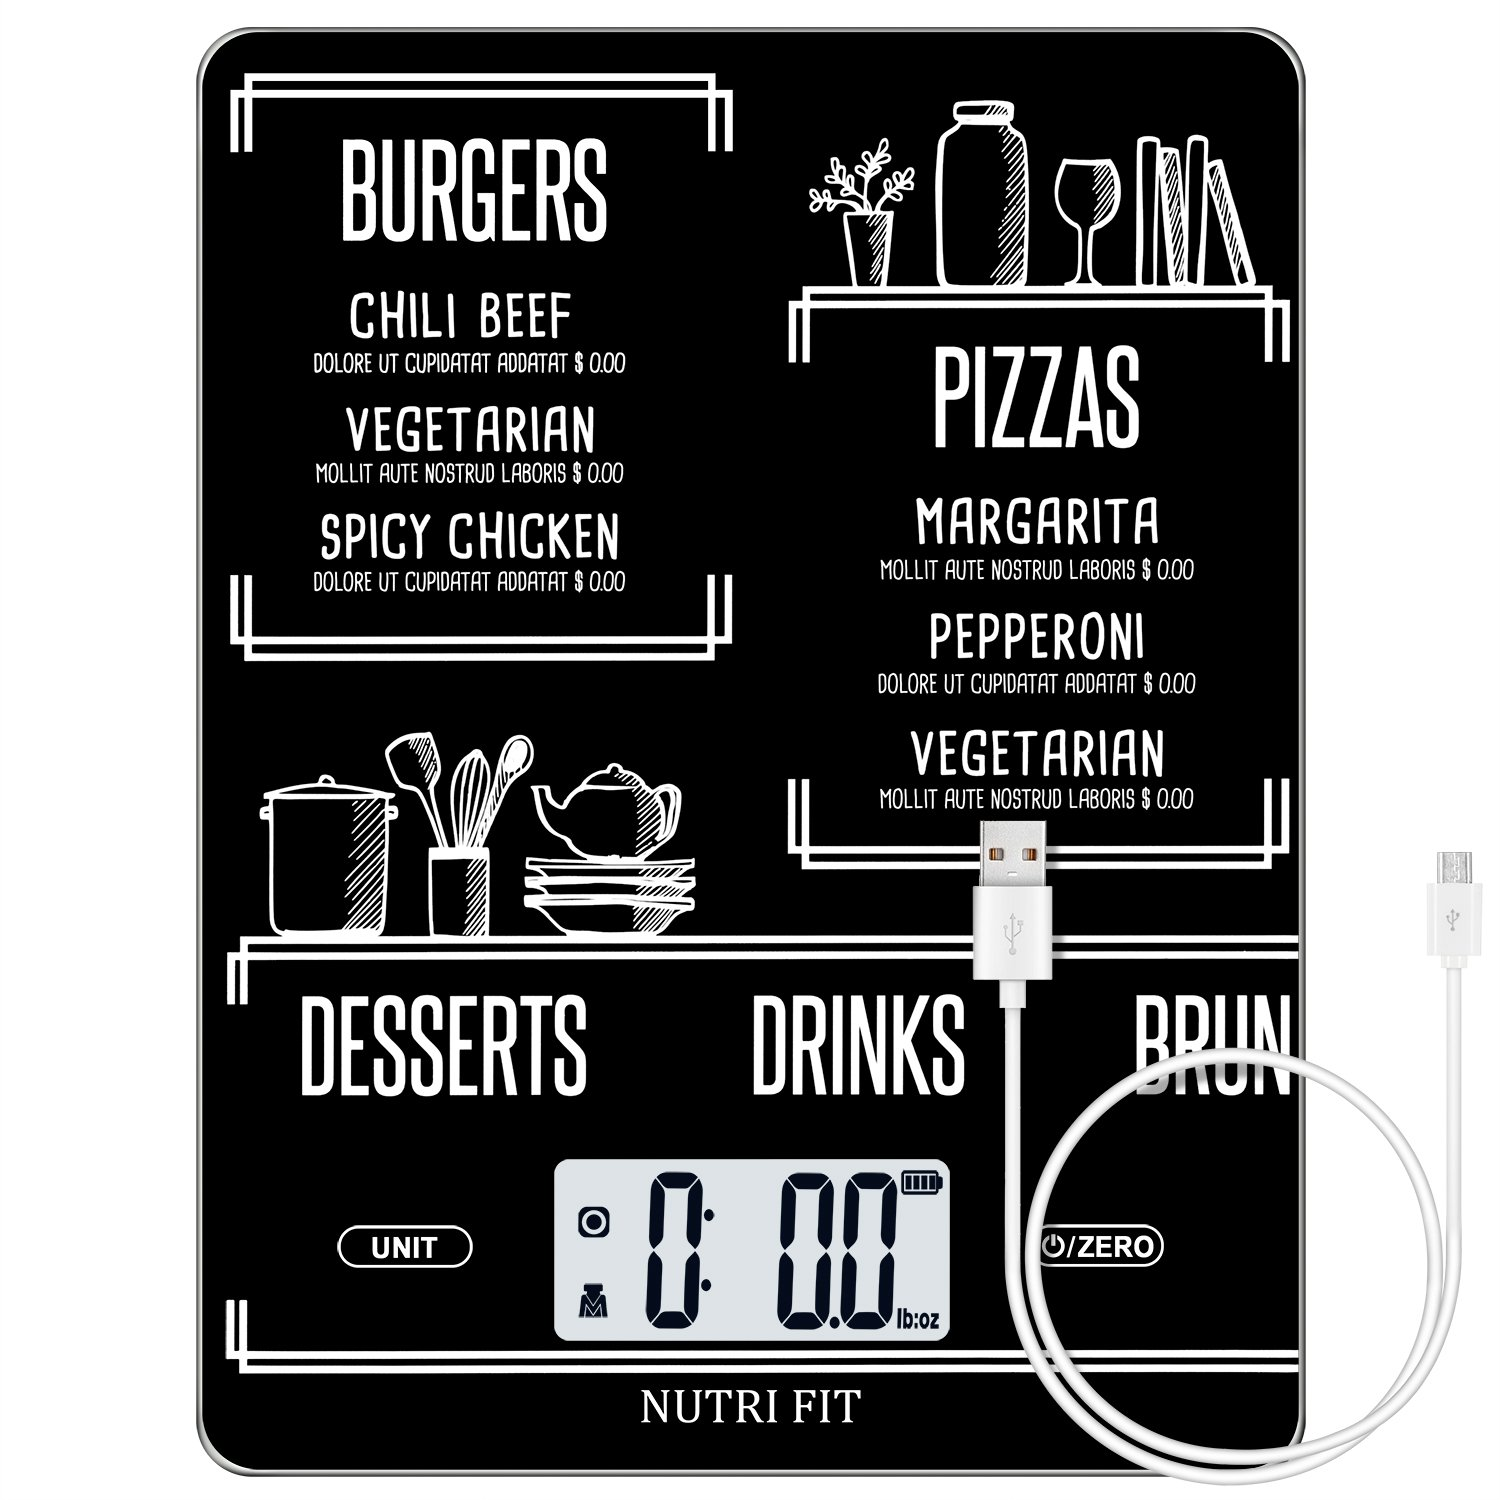 Rechargeable Digital Kitchen Scale Multifunction Food Scale with Dough Scraper by NUTRI FIT, Portable and Tare Function, 11lb/5kg Baking & Cooking Scale, Black